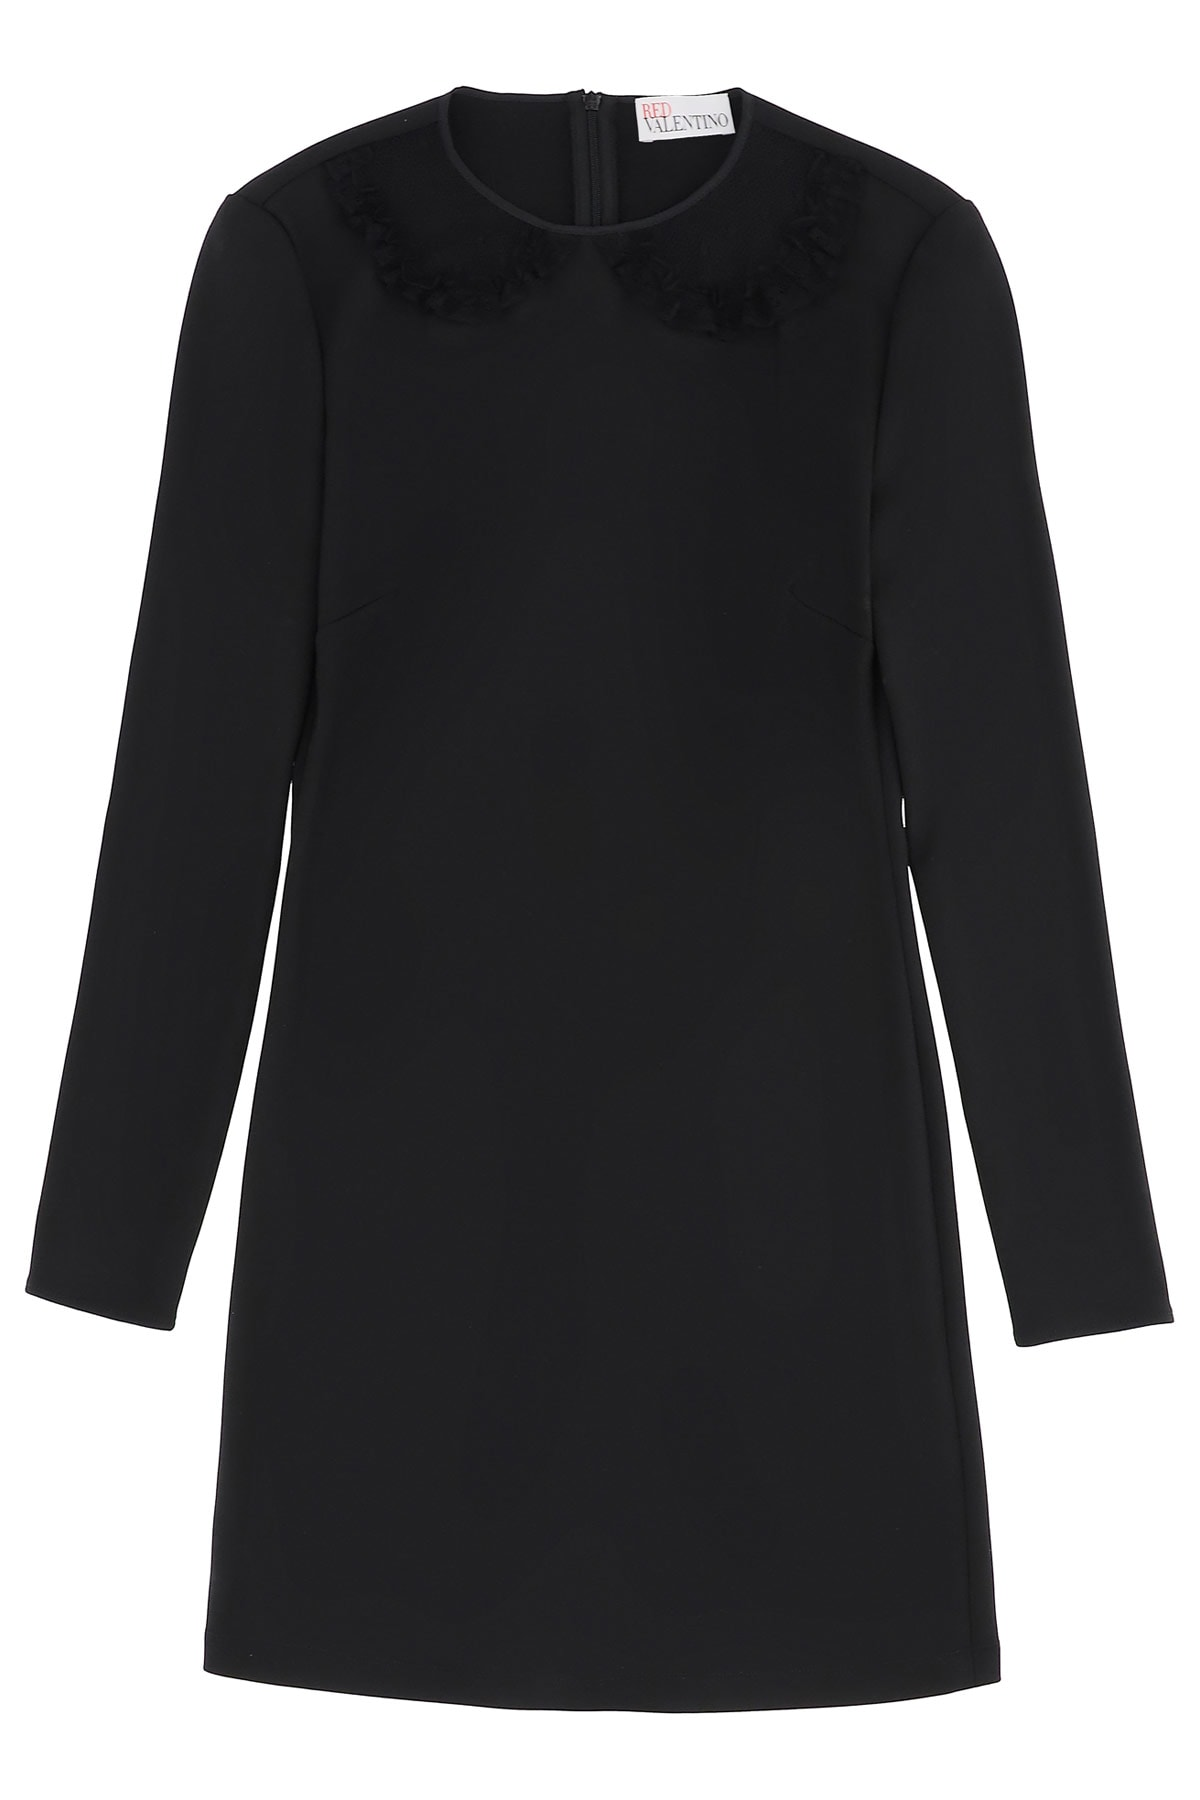 Buy RED Valentino Cady Tech Mini Dress online, shop RED Valentino with free shipping